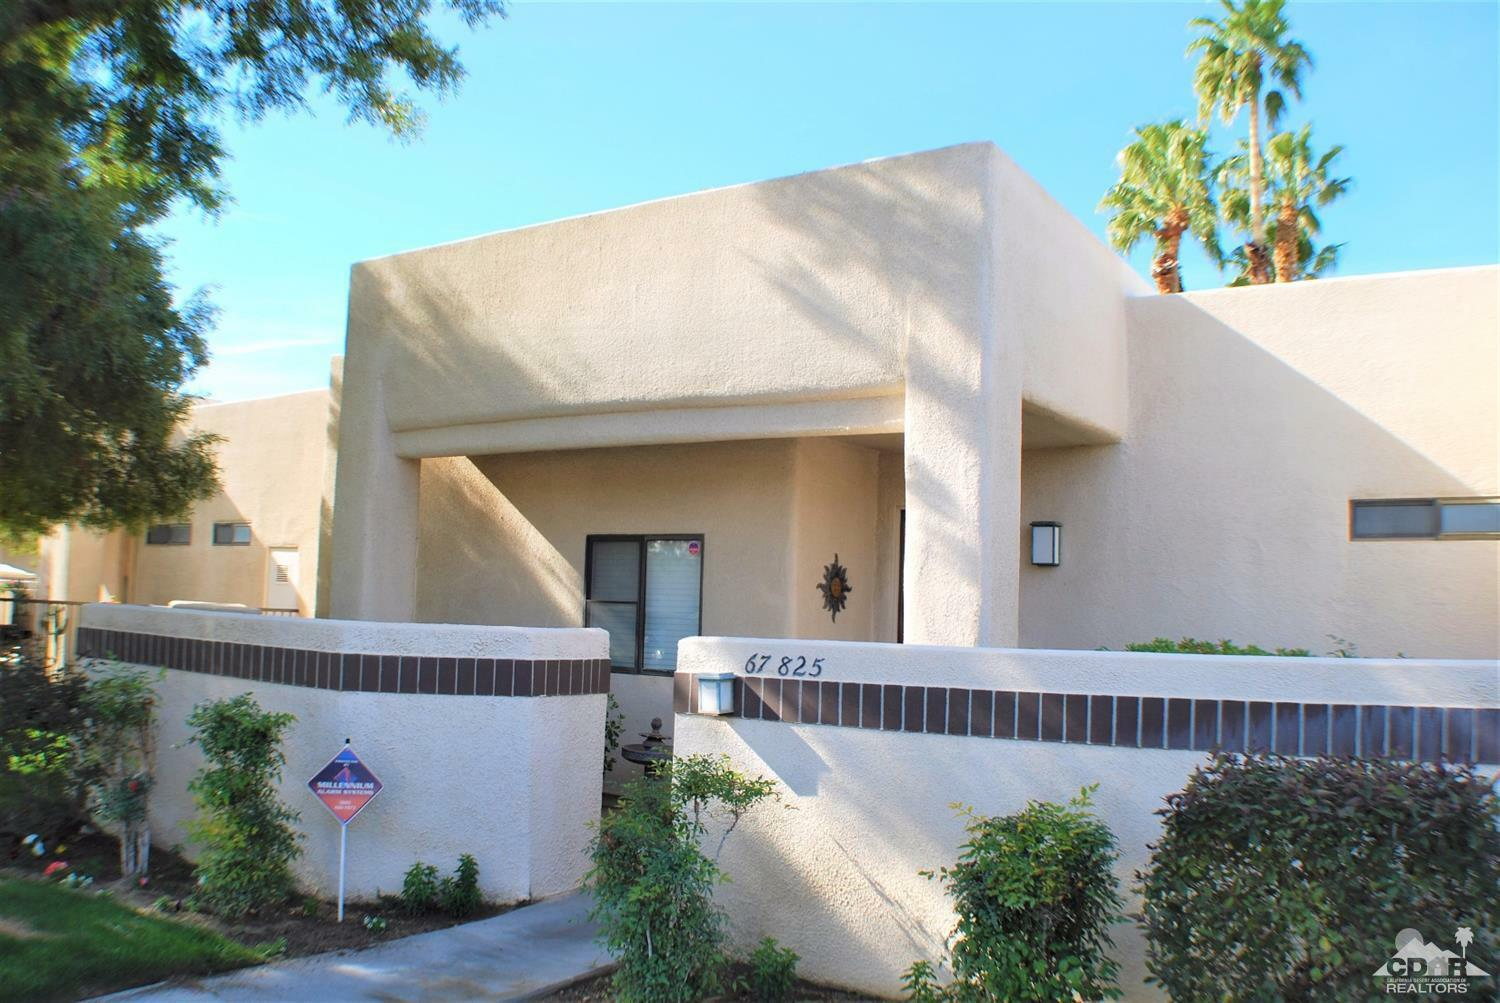 67825 North Portales Drive, Cathedral City, CA - USA (photo 1)